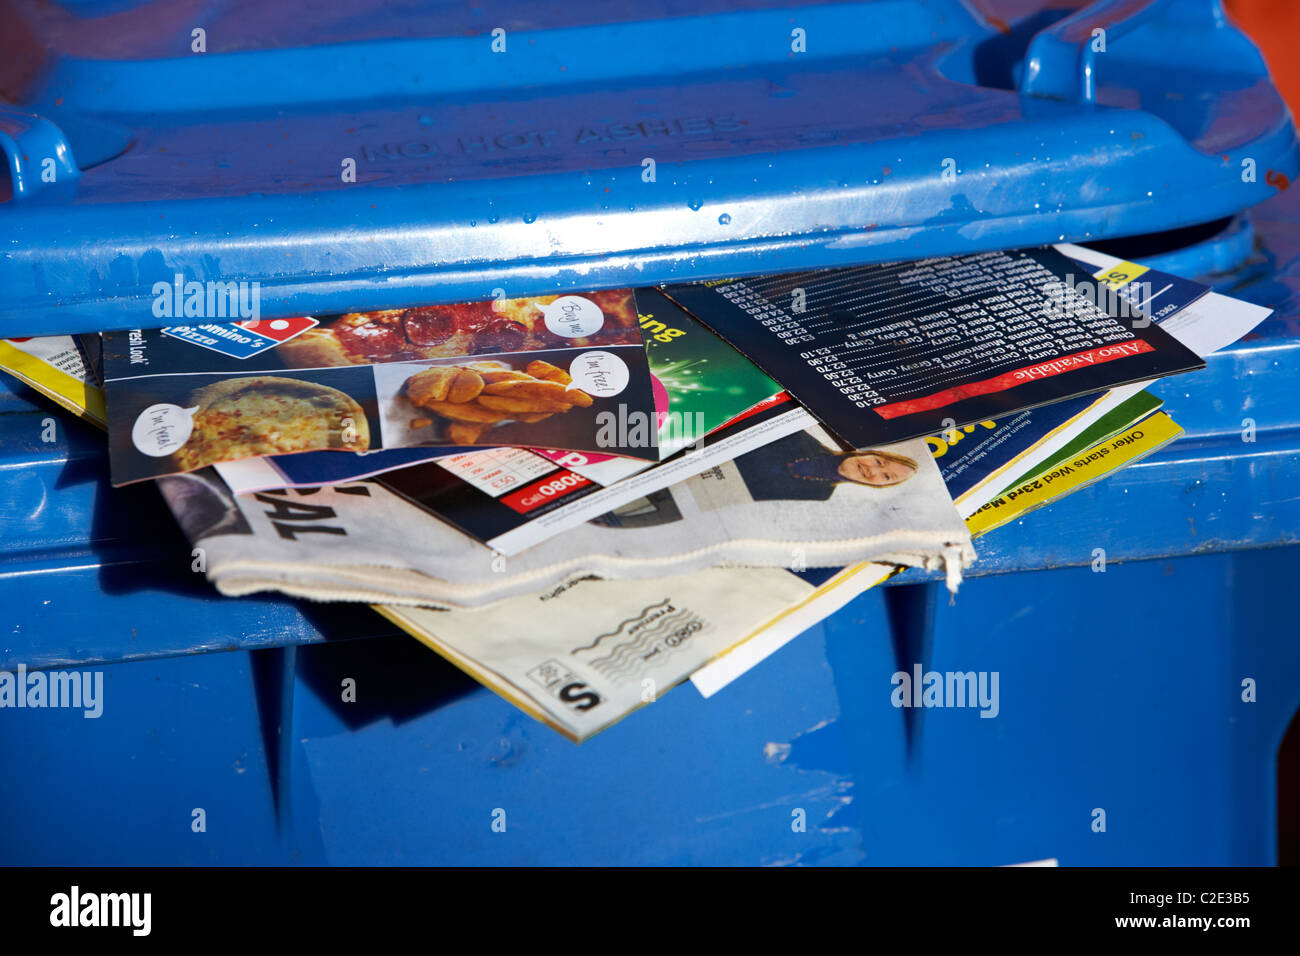 blue paper recycling bin with junk mail and local newspapers sticking out of it and lid not closed in the uk - Stock Image